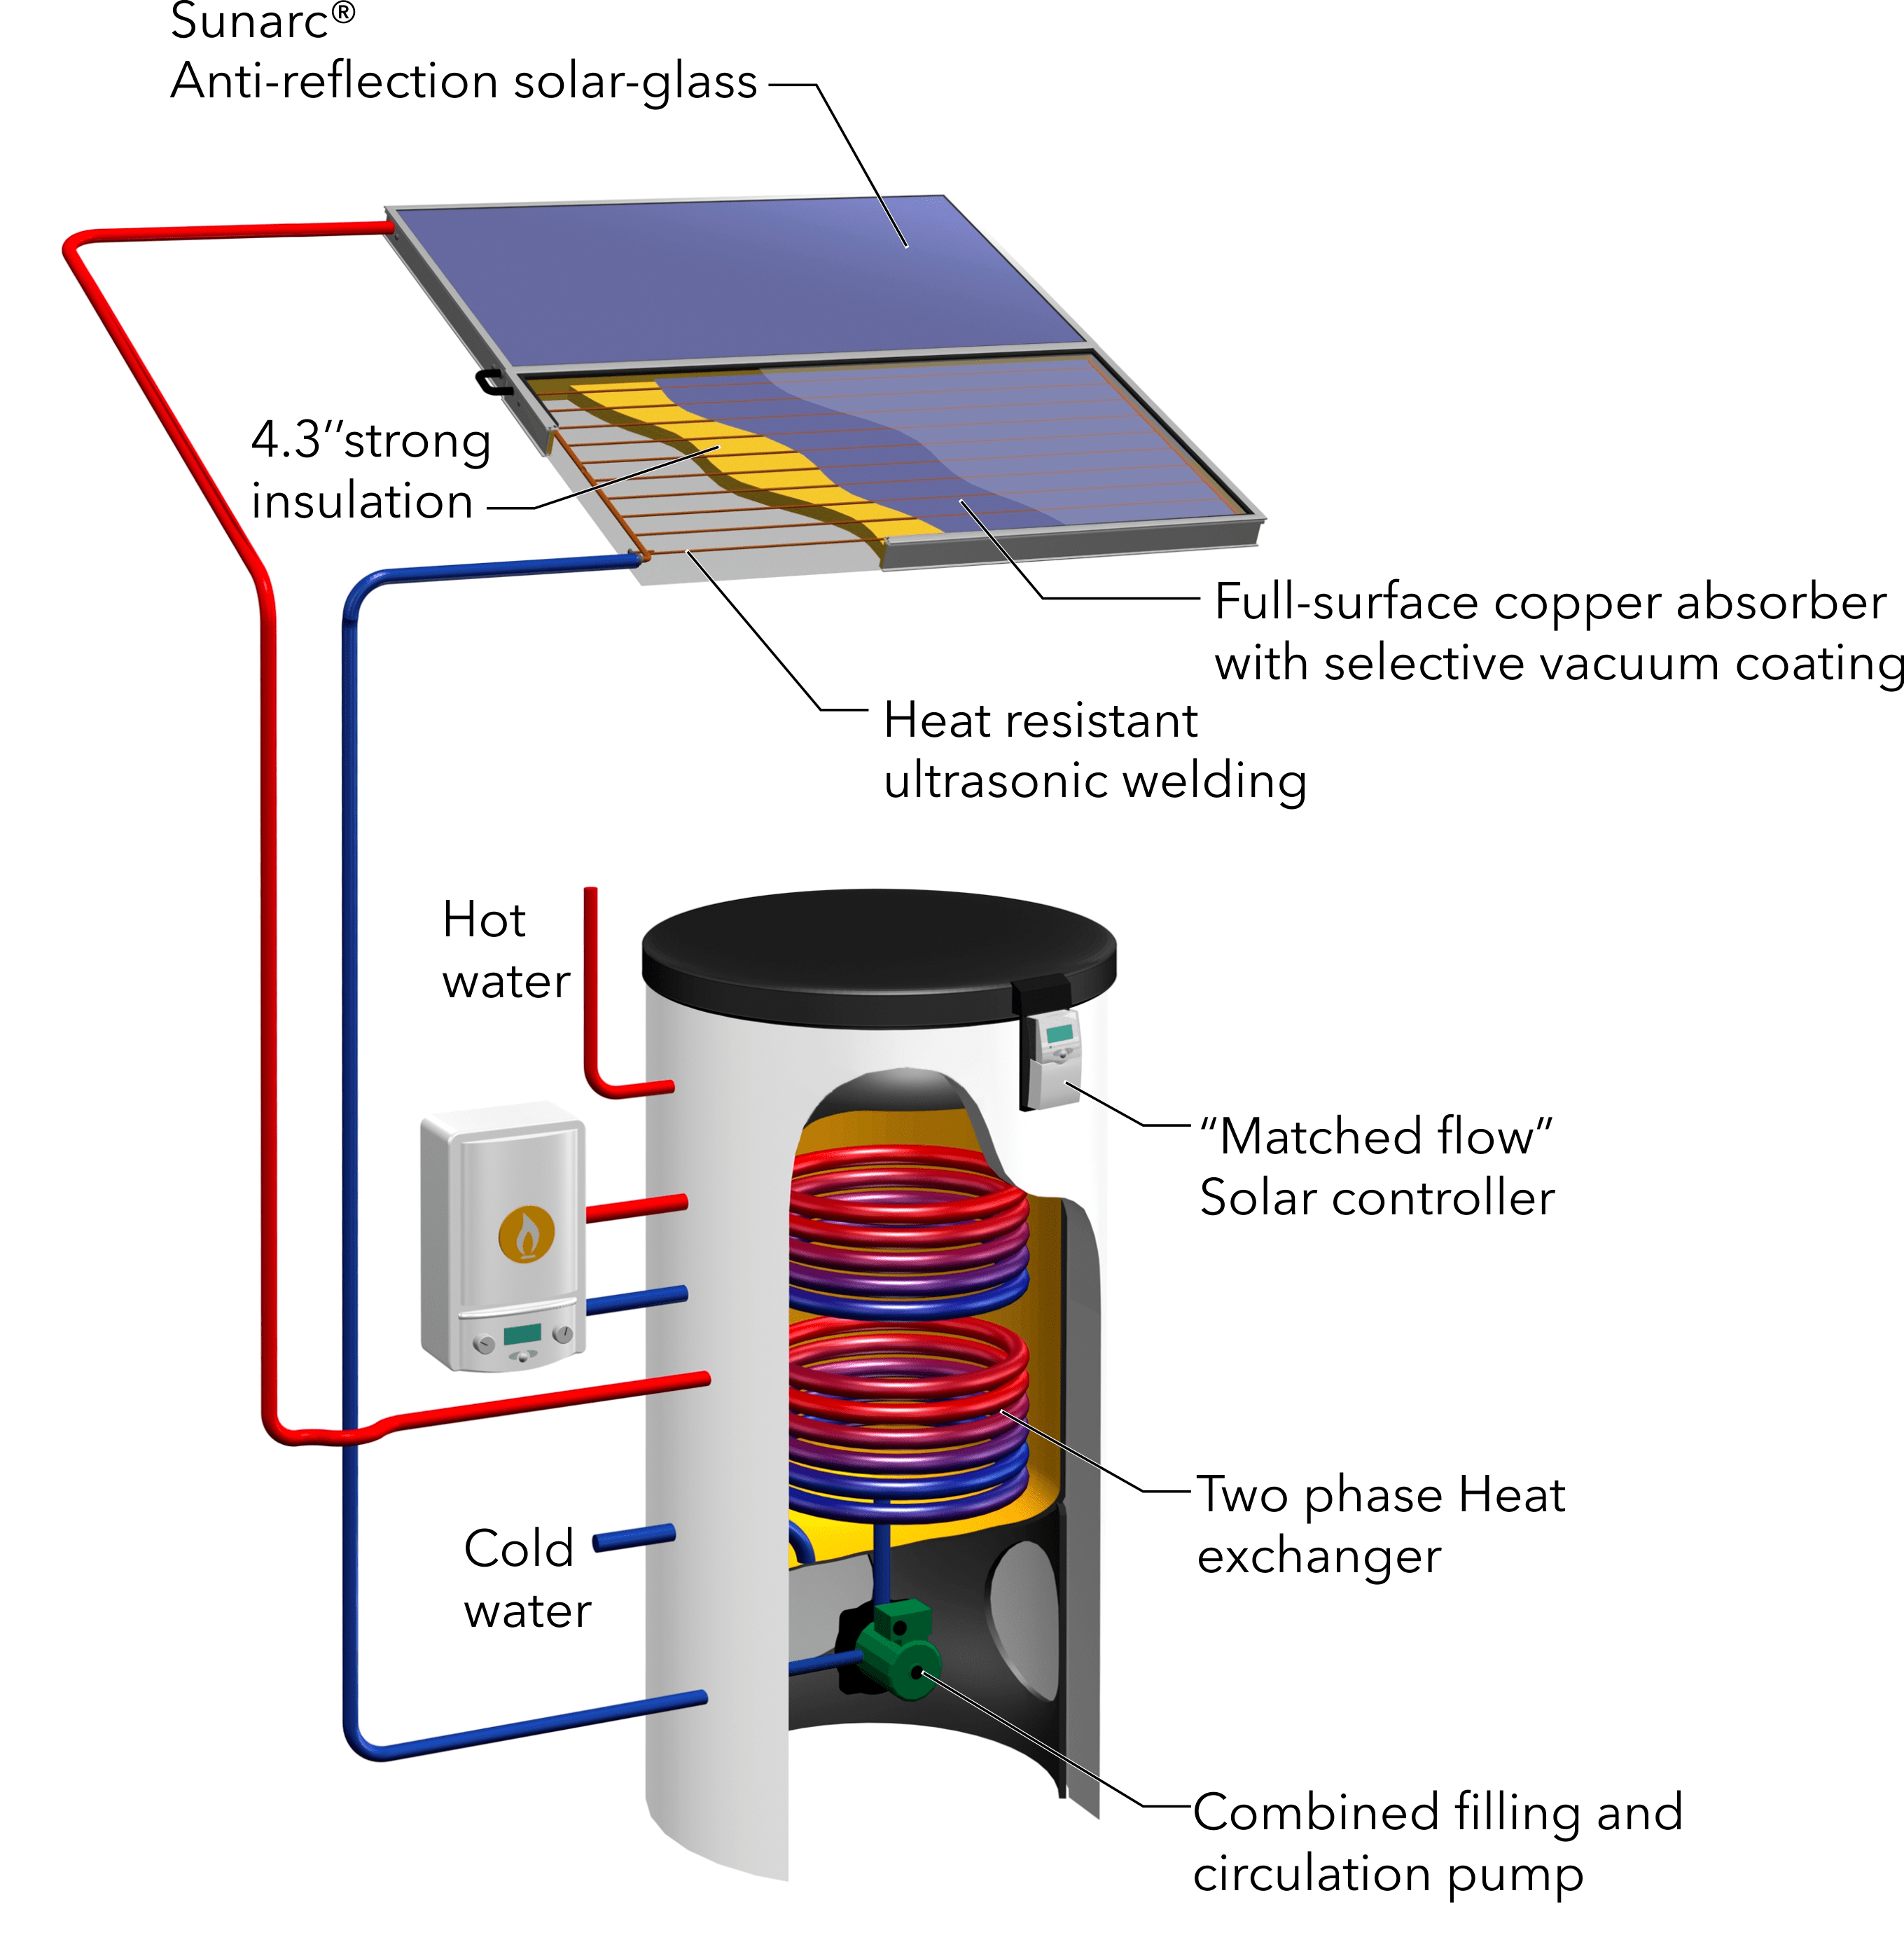 thermoelectric generator diagram 2006 cobalt ss wiring smart solar thermal drainback system installs for half the